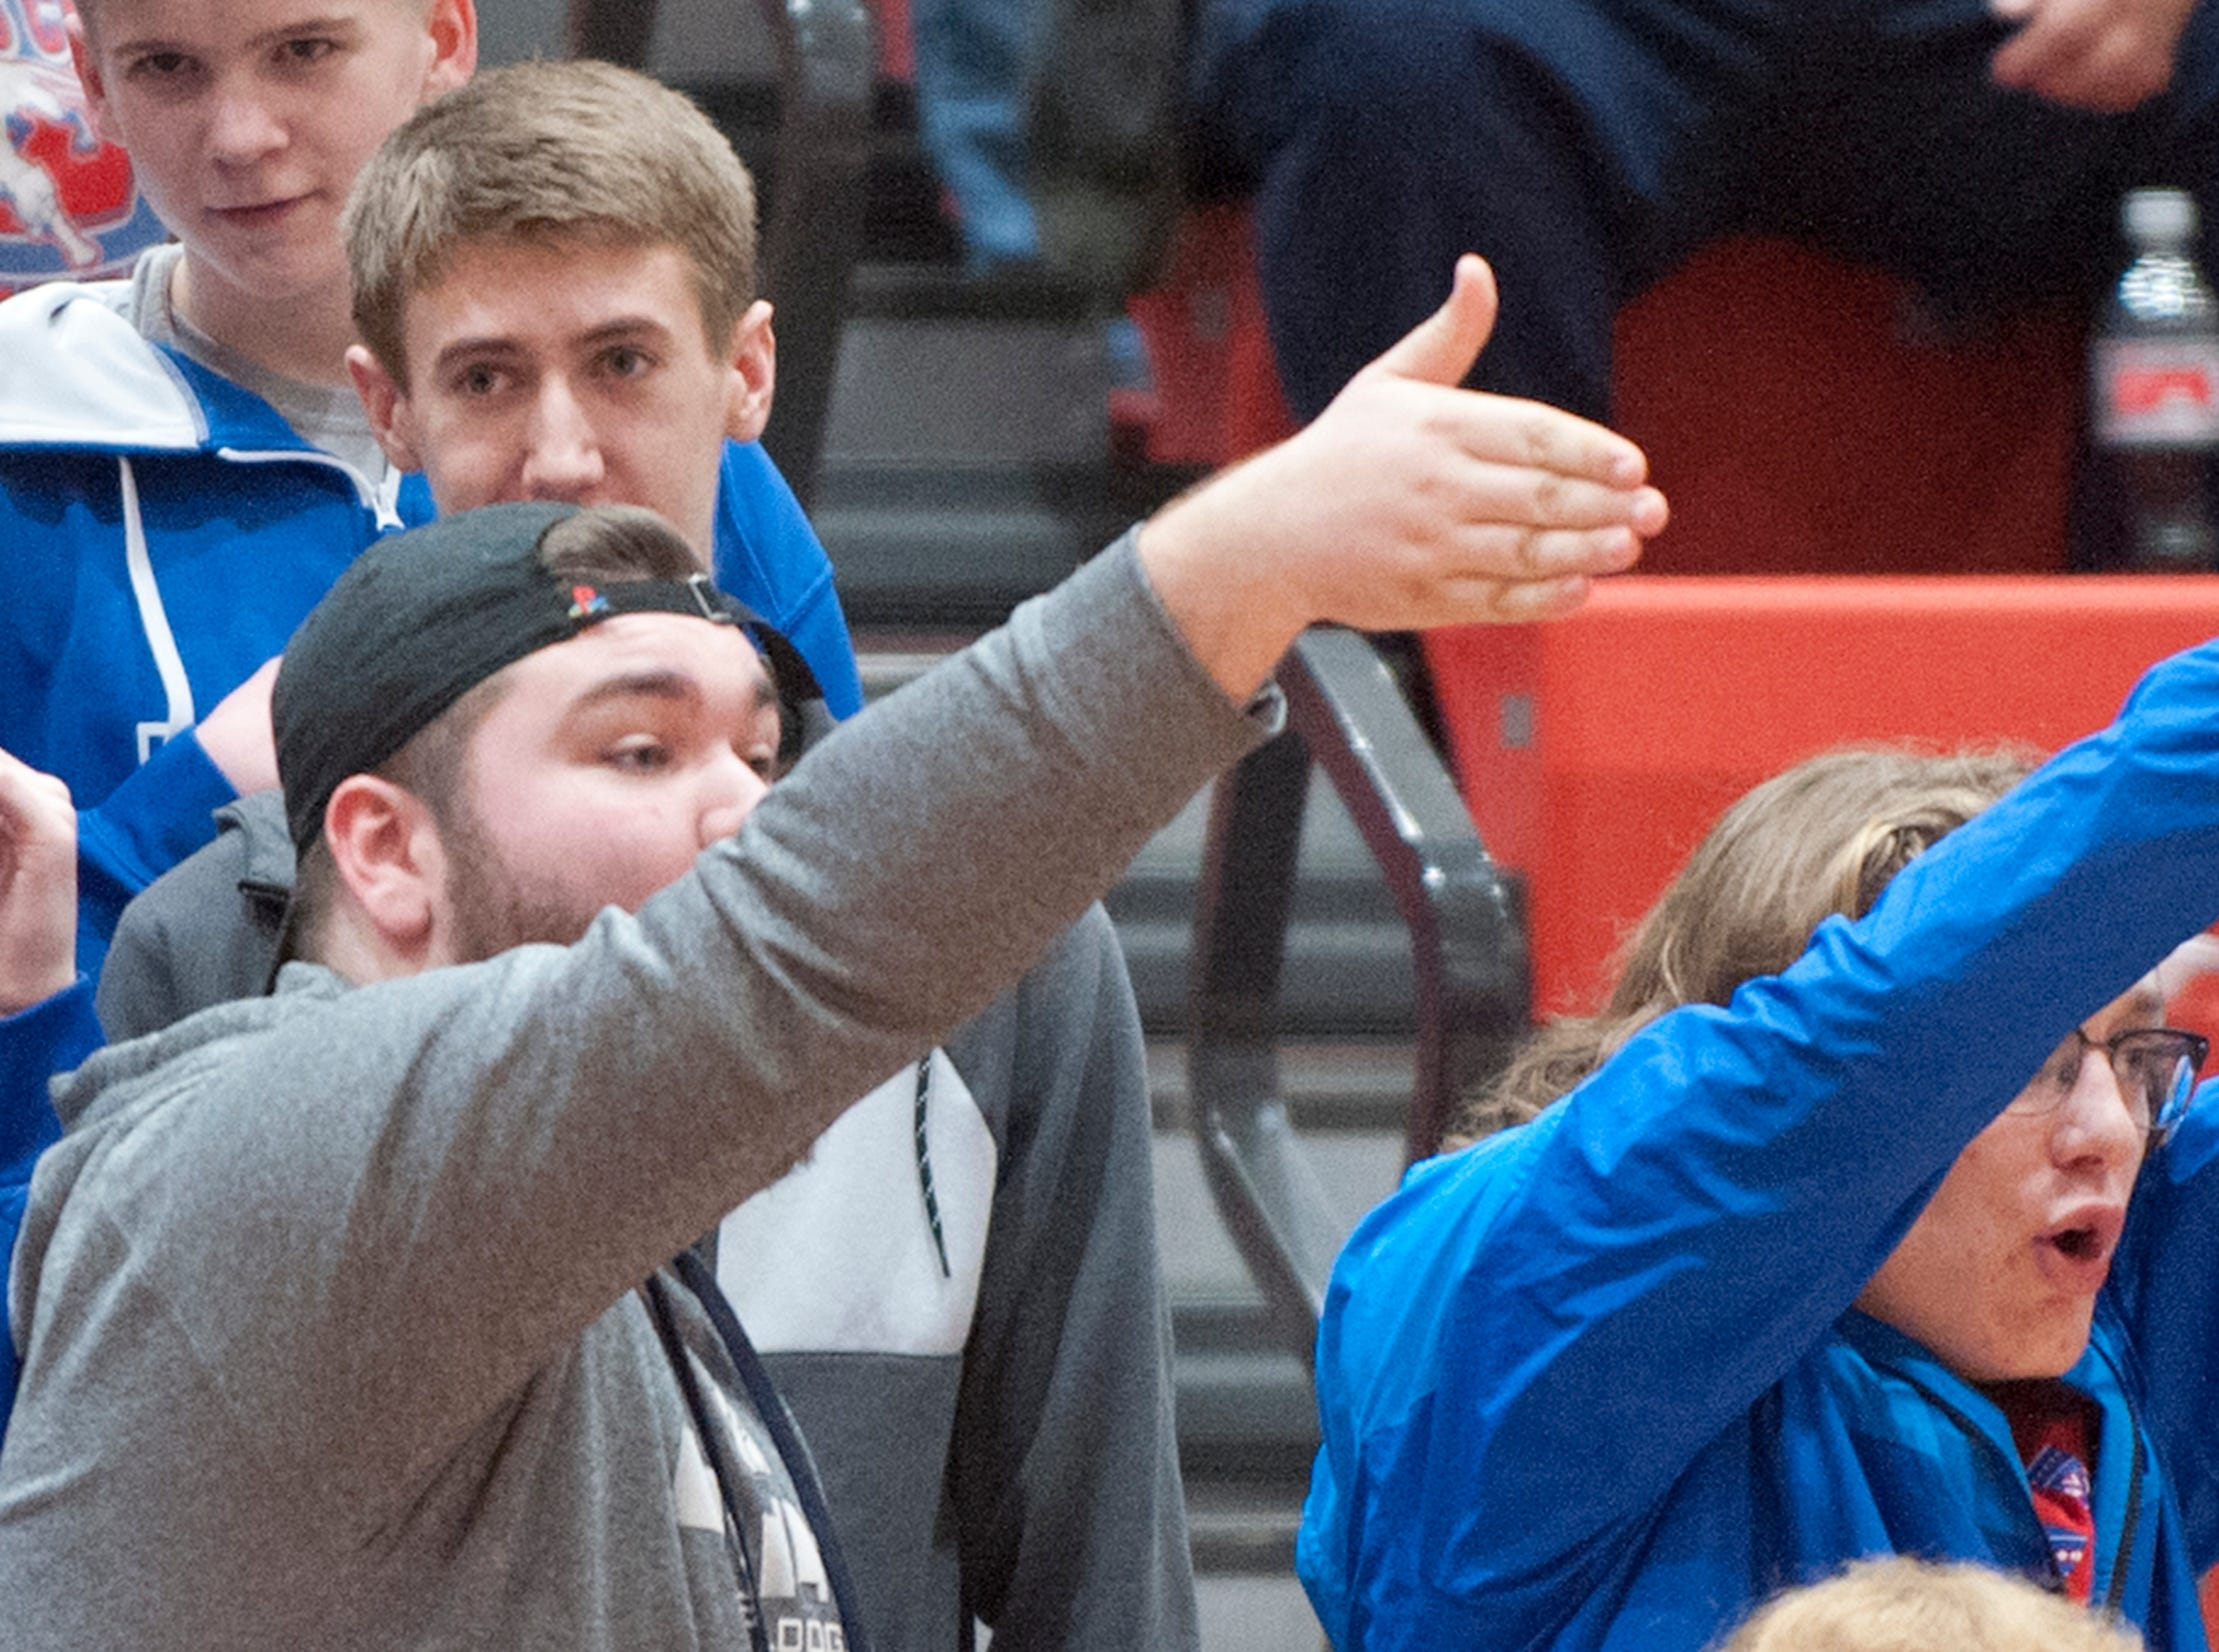 Jennings County fans tease a Bedford North Lawrence player after the player fouled.04 February 2019